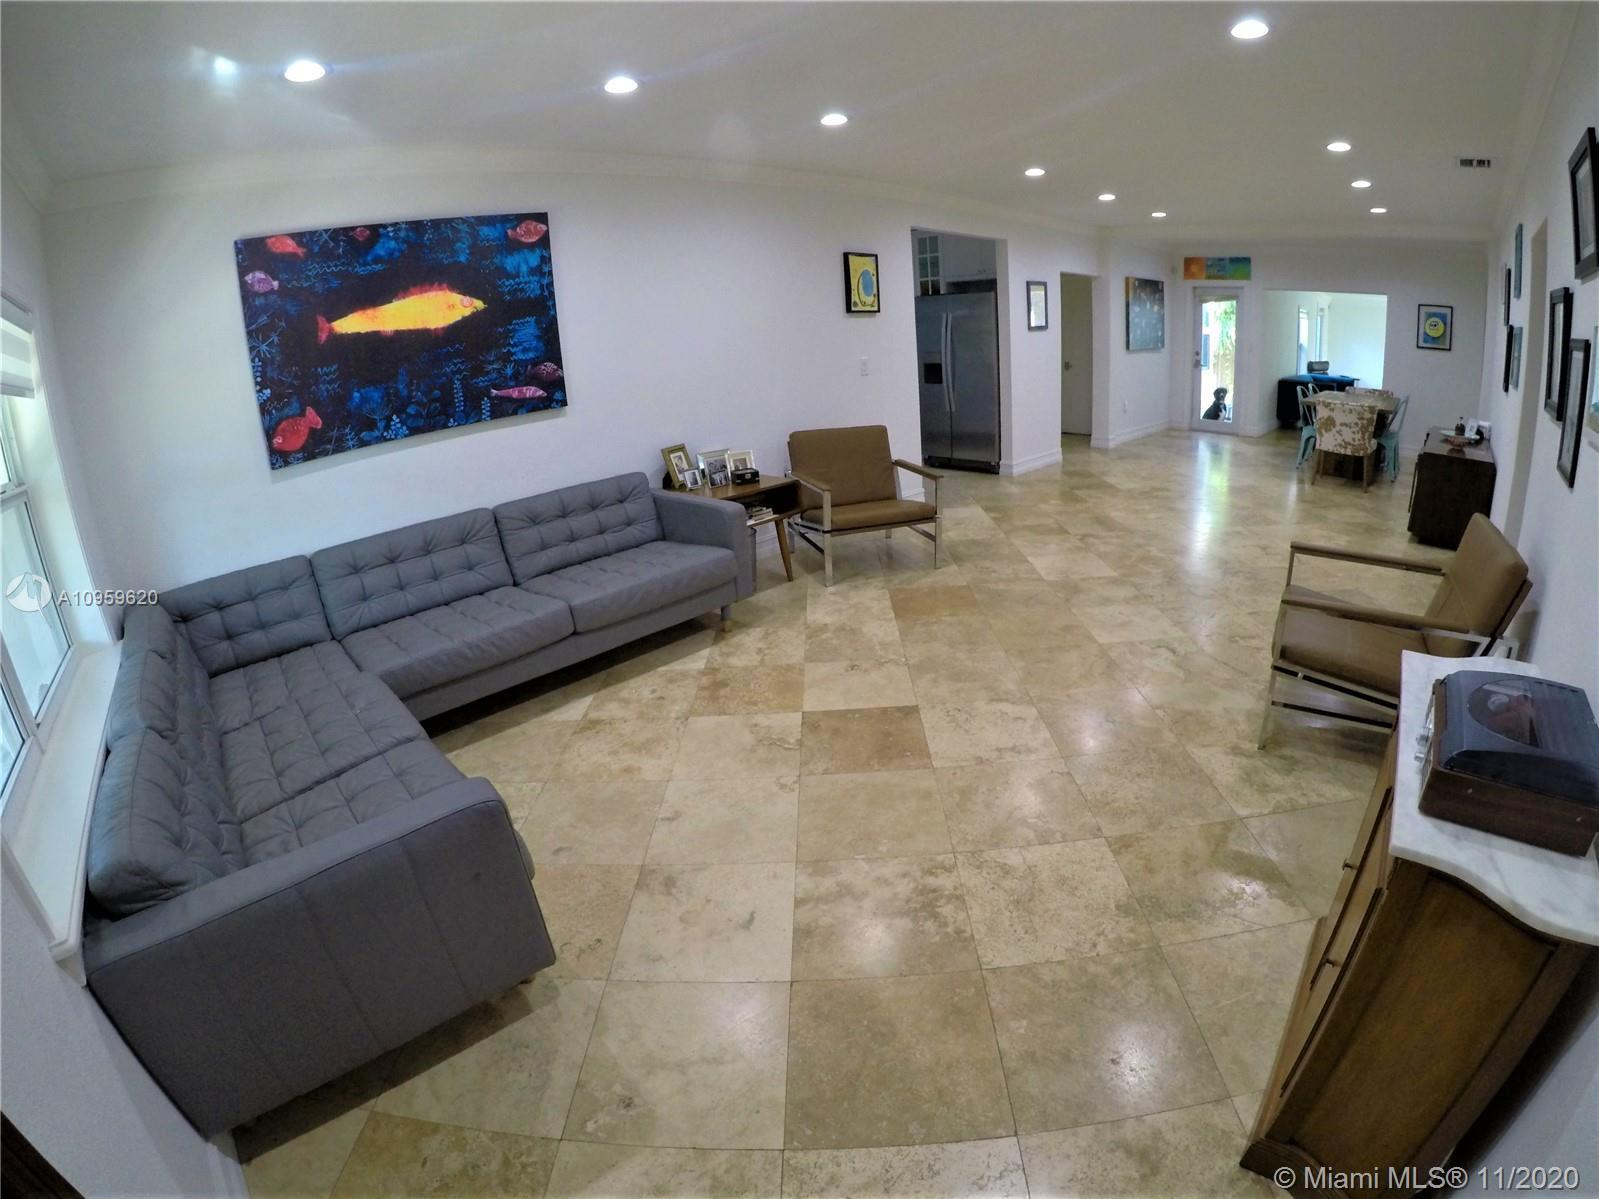 GREAT LOCATION!! STEPS TO THE OCEAN AND HOUSES OF WORSHIP. Totally updated Surfside home. As per own